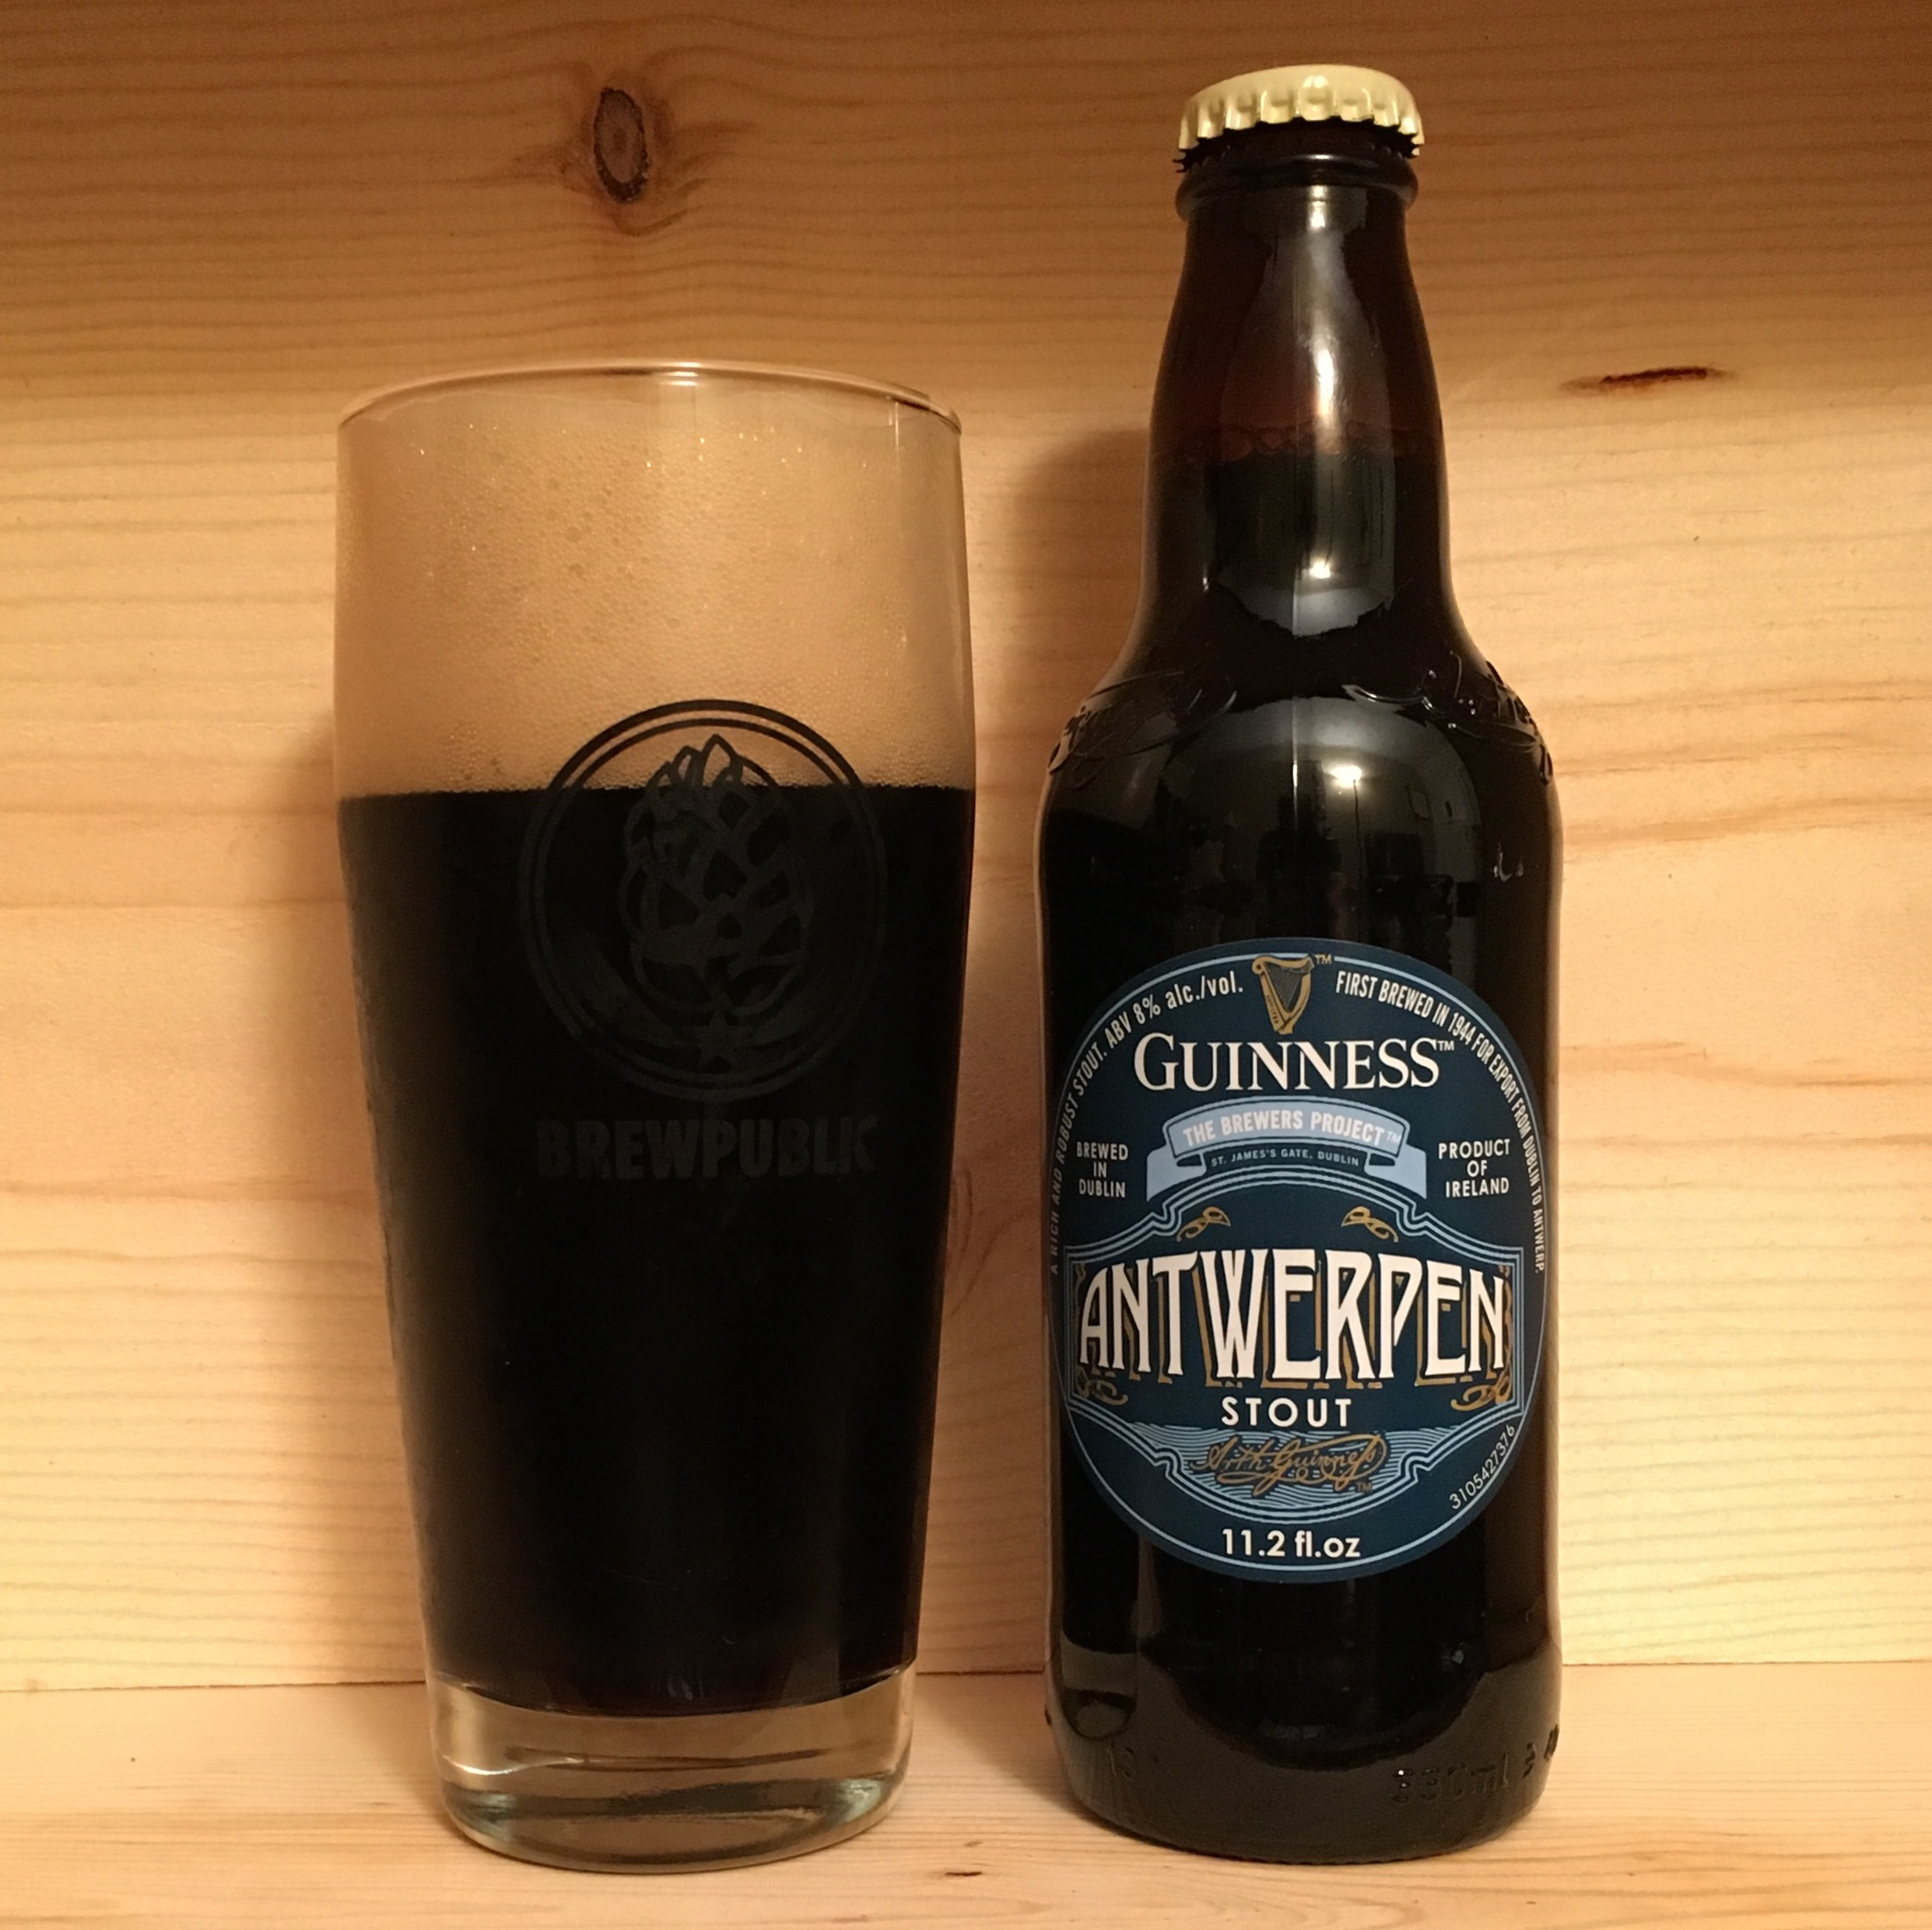 Brewed for the Belgian city of Antwerp, Guinness has now released Guinness Antwerpen Stout.